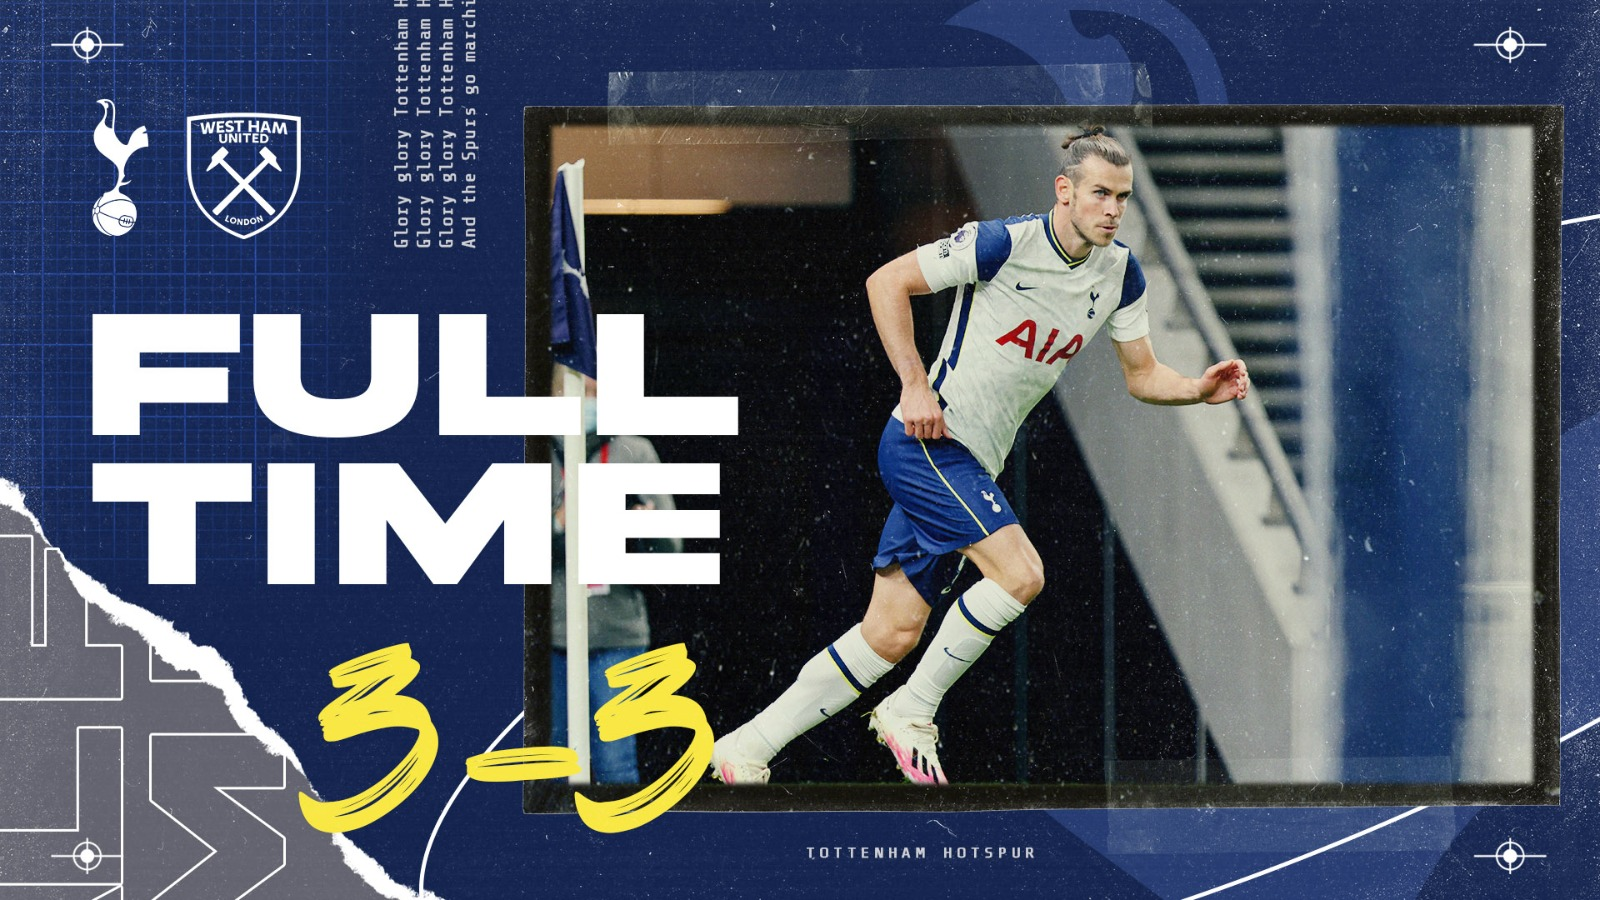 FULL-TIME: A last-minute equaliser for the visitors sees the points shared at Tottenham Hotspur Stadium.  ⚪ #THFC 3-3 #WHUFC ⚒️ https://t.co/PsGbPGwwKf